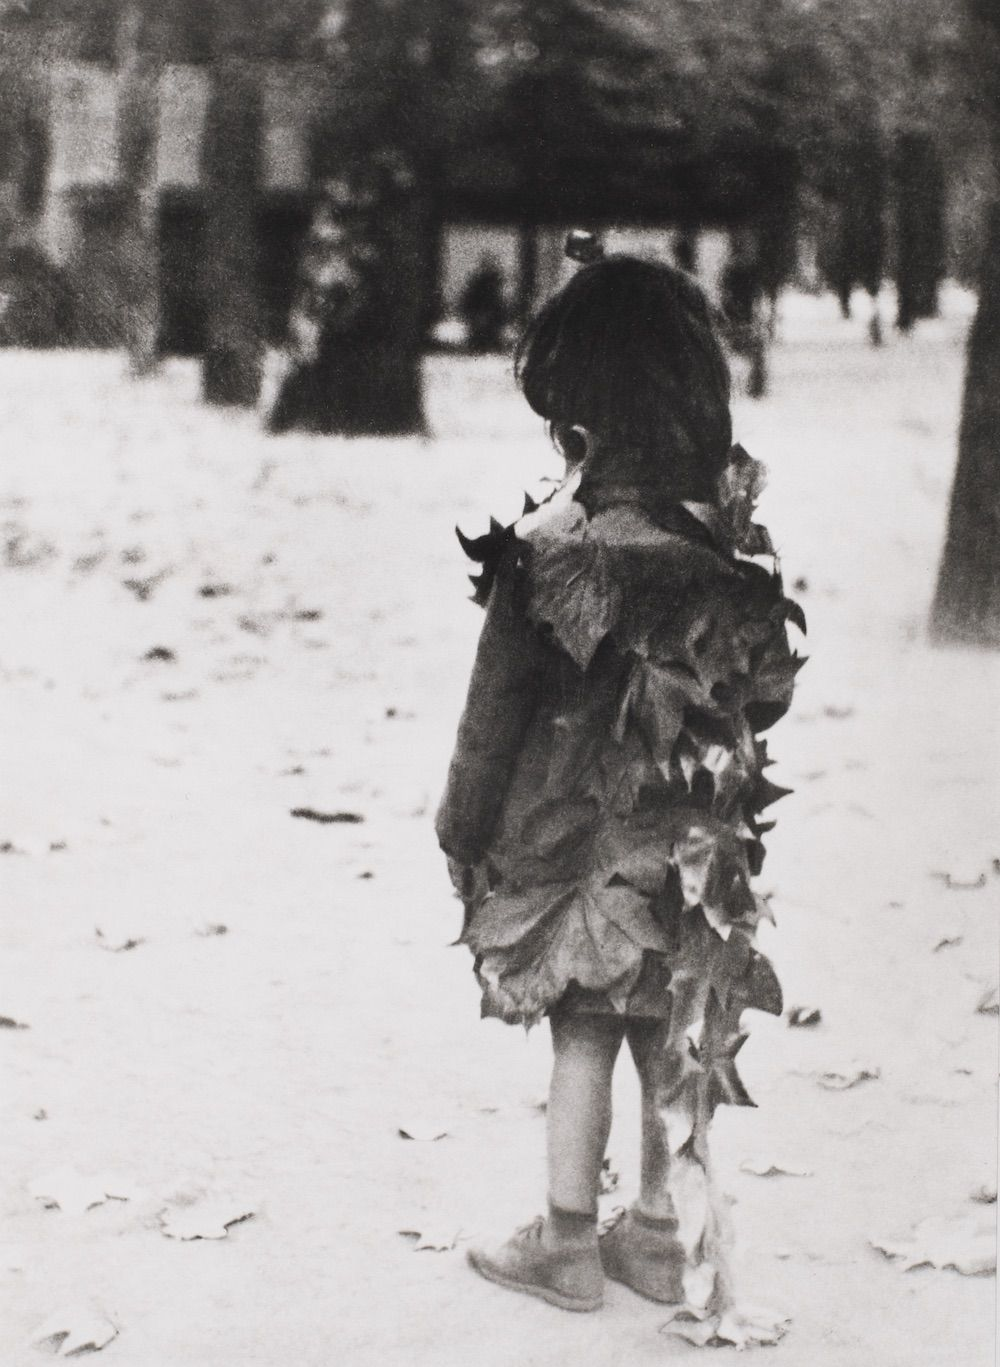 Edouard Boubat (1923-1999)  Jardin de Luxembourg, 1946  Gelatin silver print  16 x 12 inches (paper) 14 x 95 inches (image), black and white photography